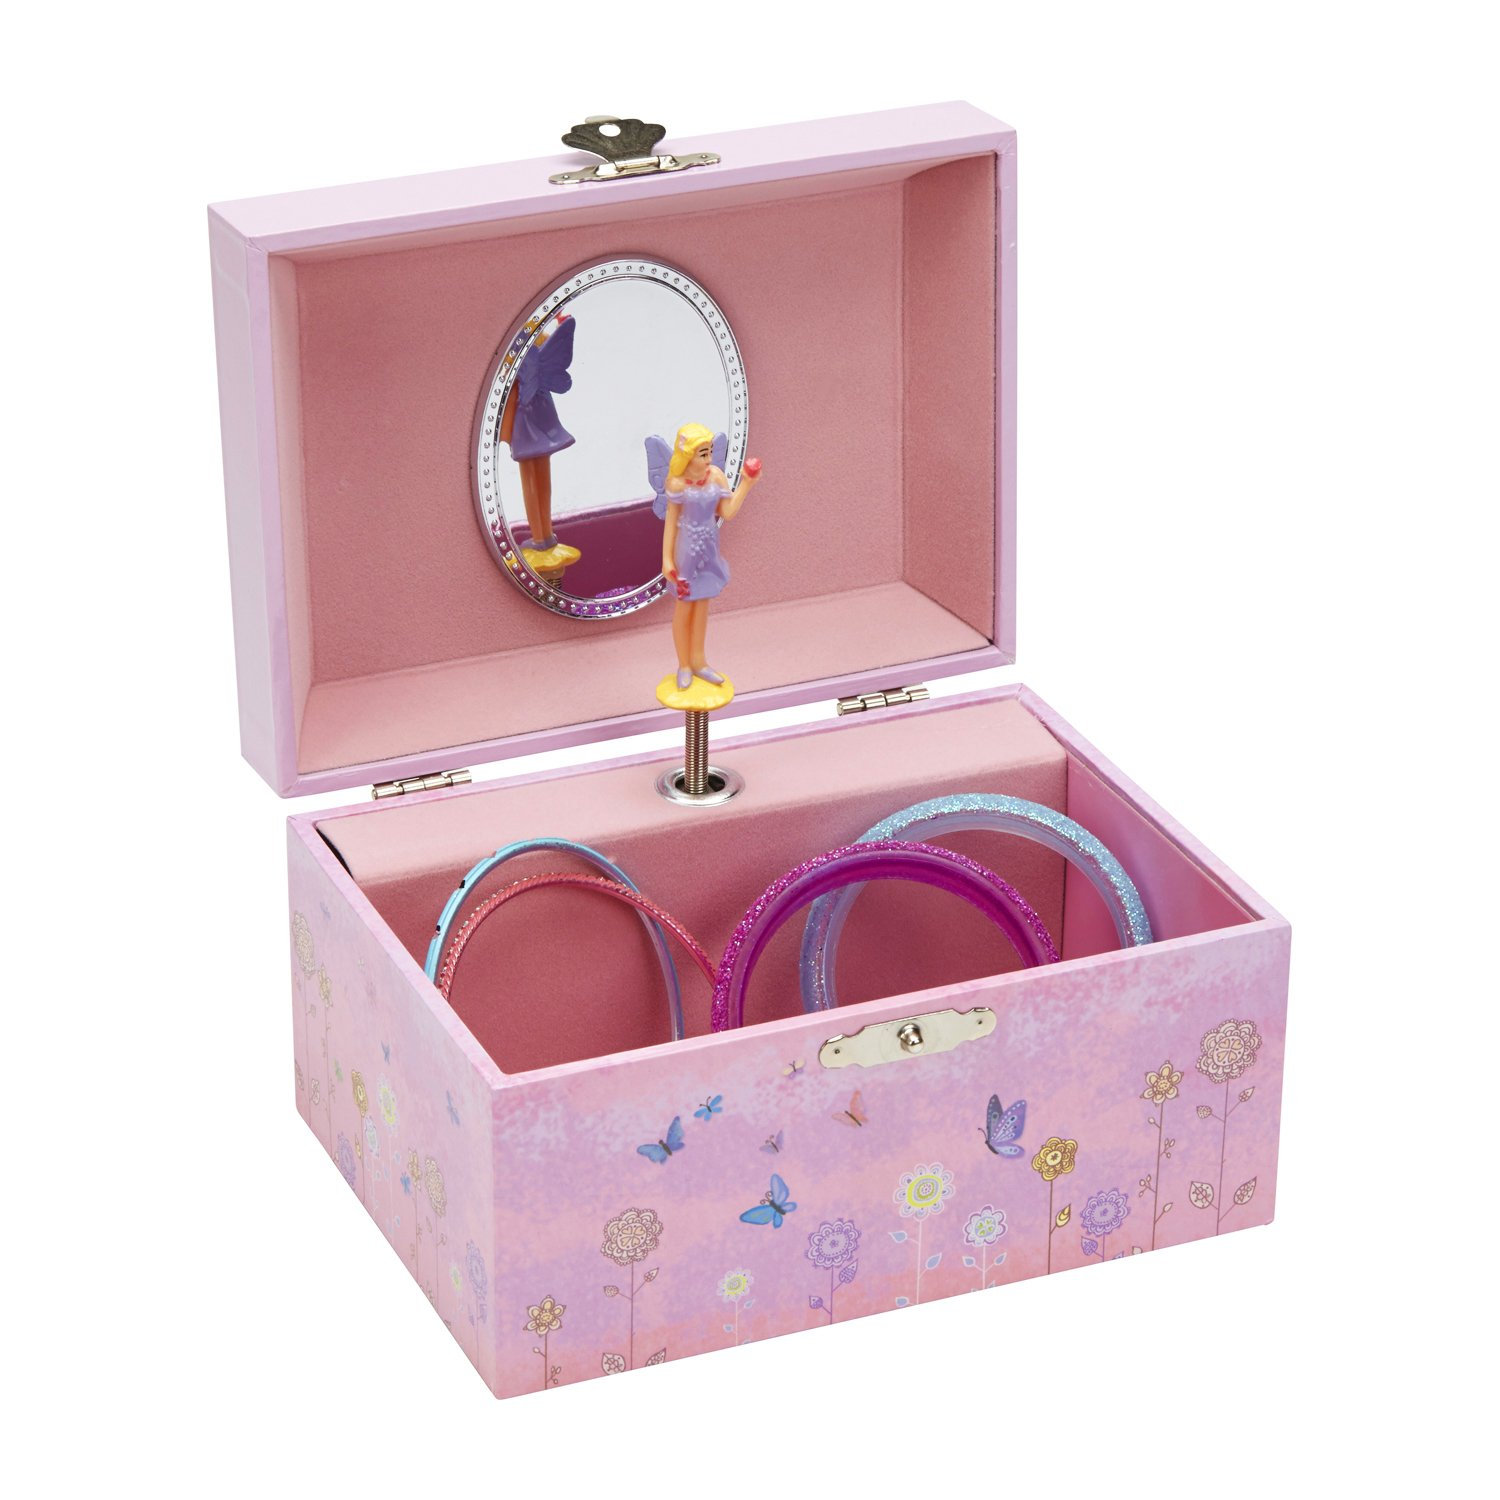 JewelKeeper Girl's Musical Jewelry Storage Box with Twirling Fairy, Flower Design, Dance of the Sugar Plum Fairy Tune